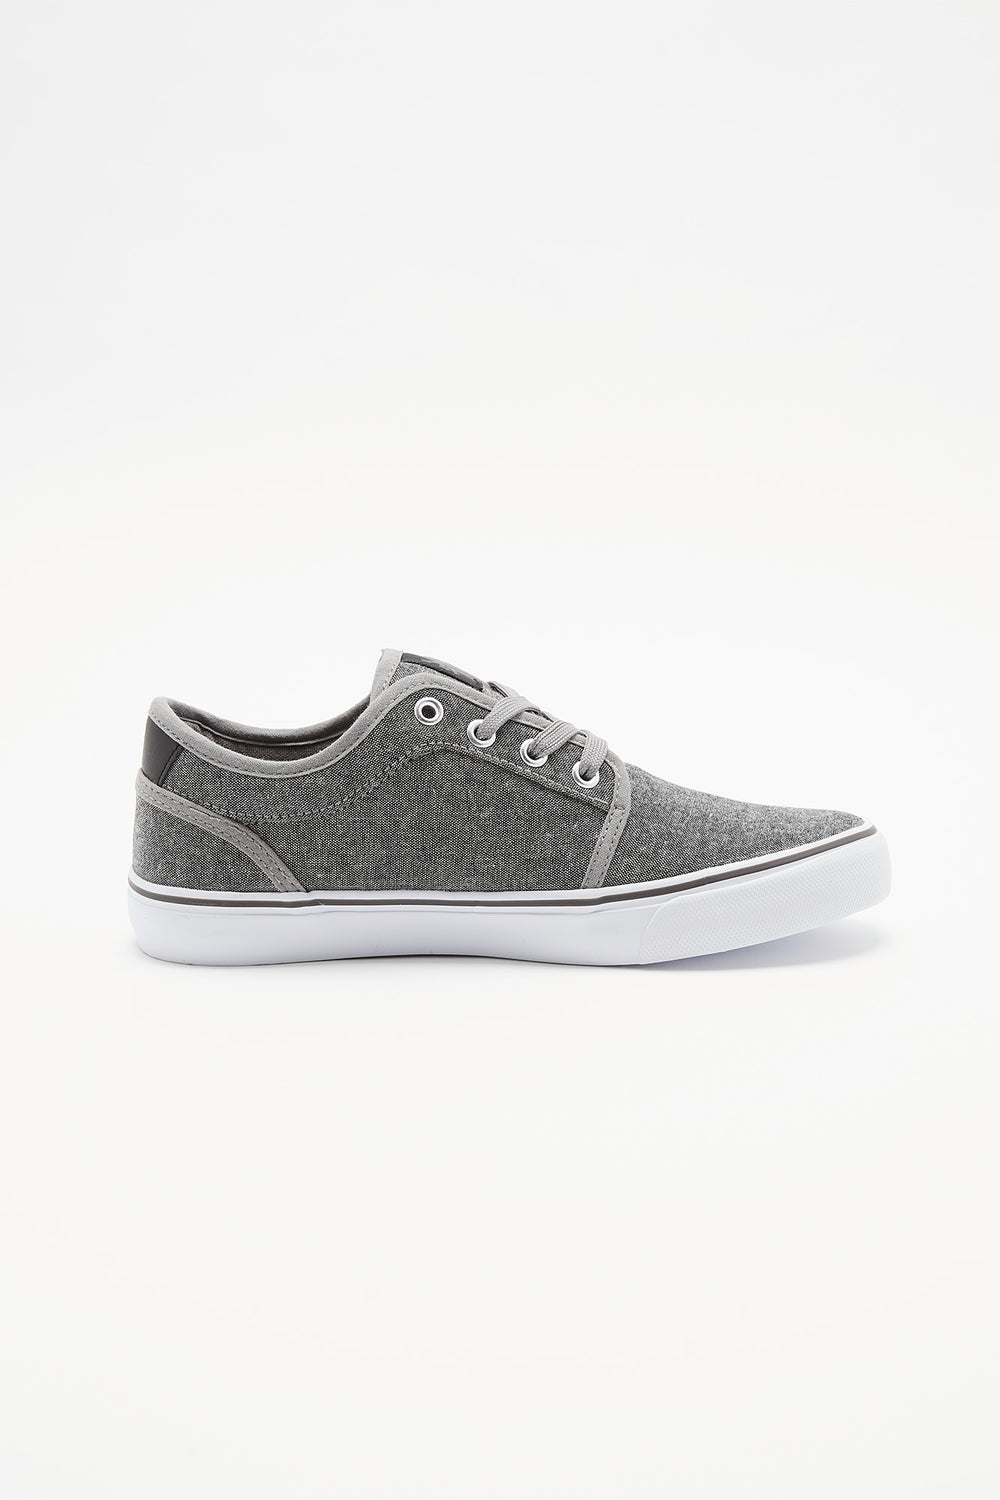 Zoo York Boys Lace-Up Canvas Skate Shoes Heather Grey